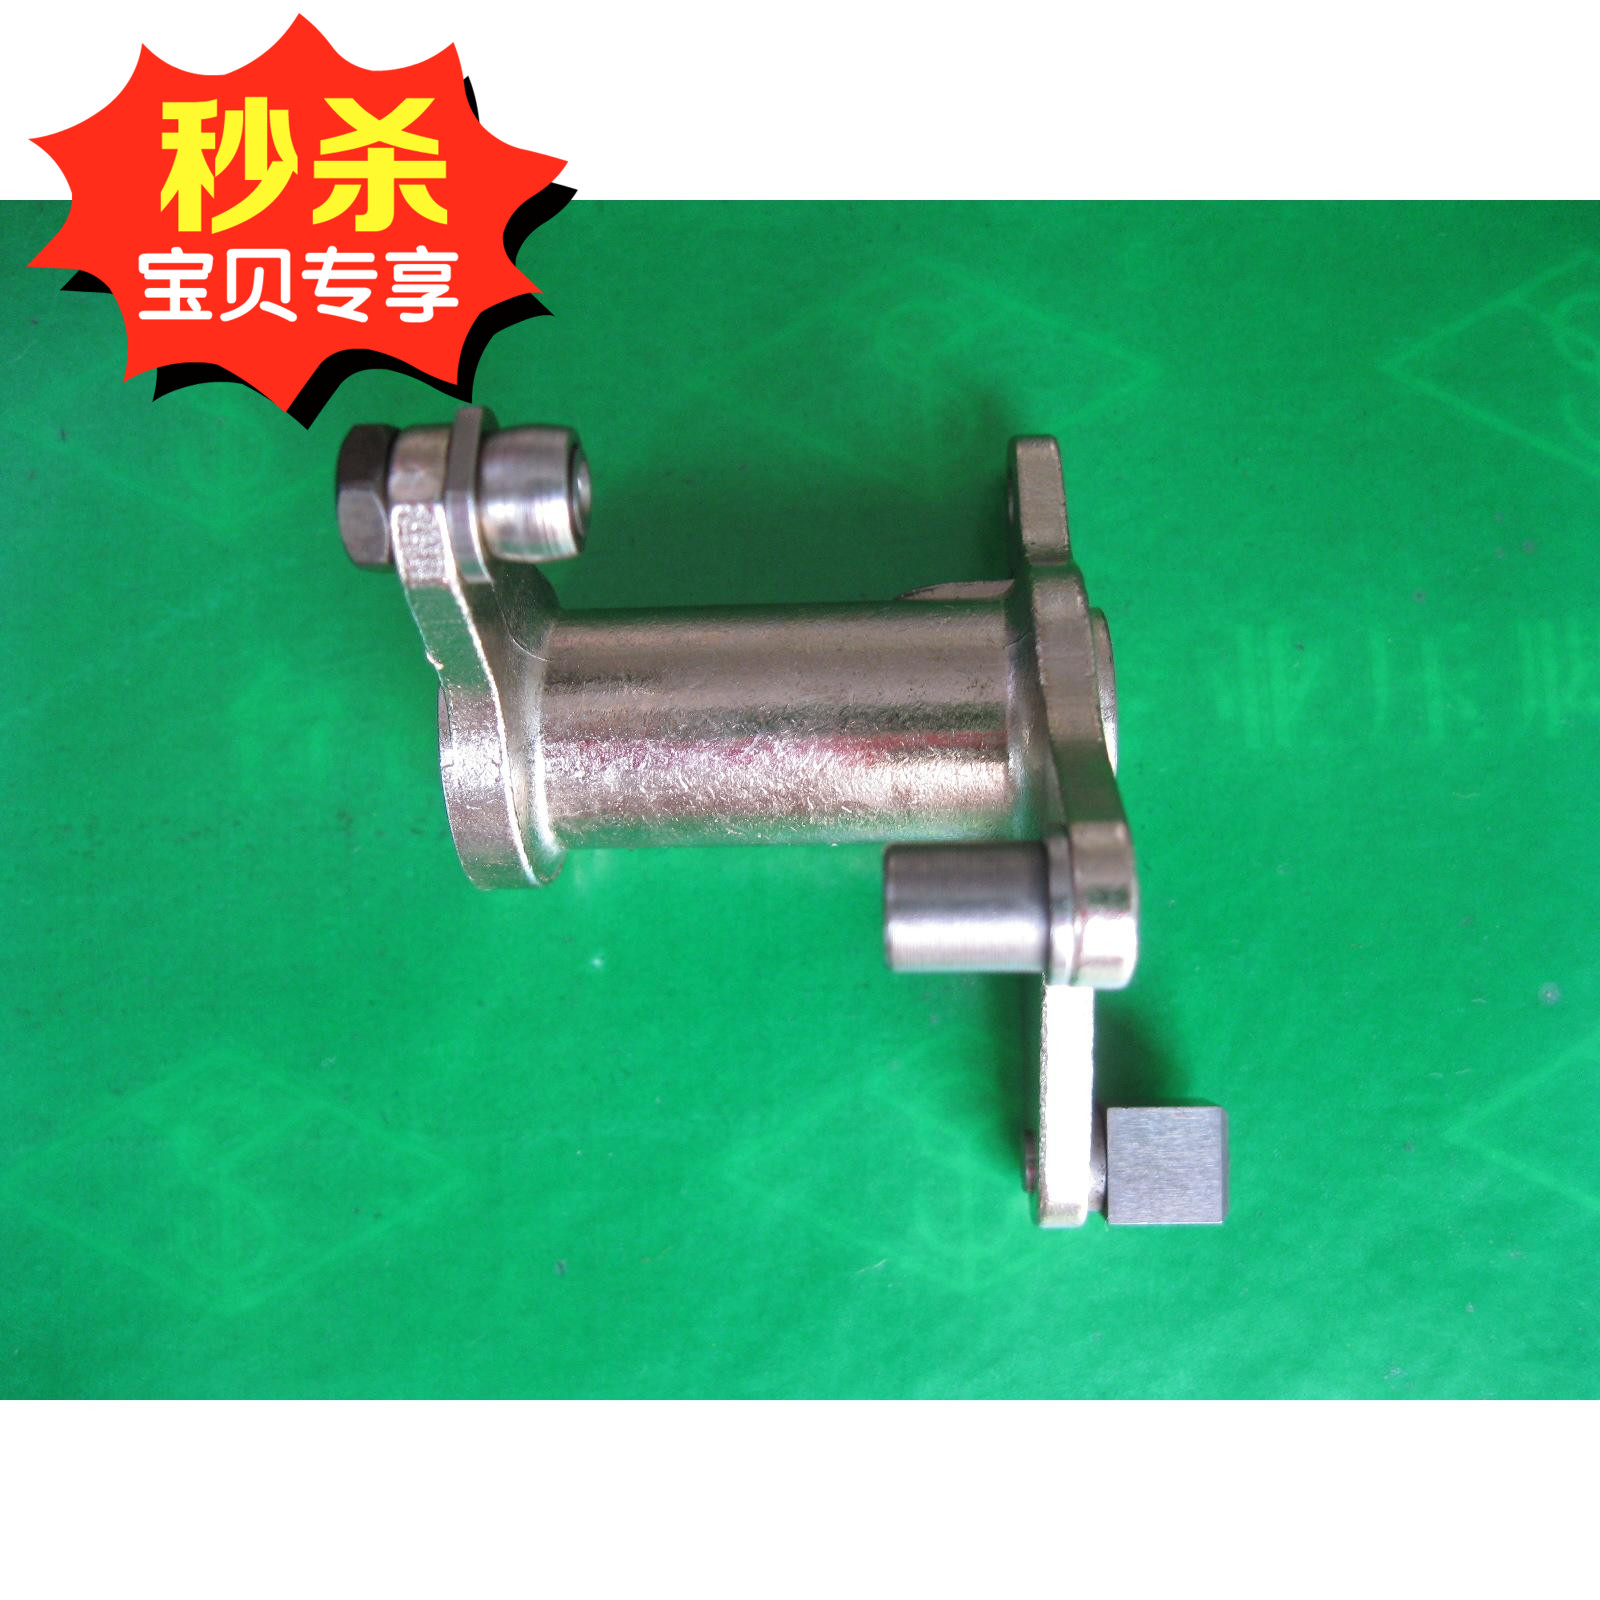 Industrial sewing accessories brother C201 computer flat car shearing line transmission frame 154582001